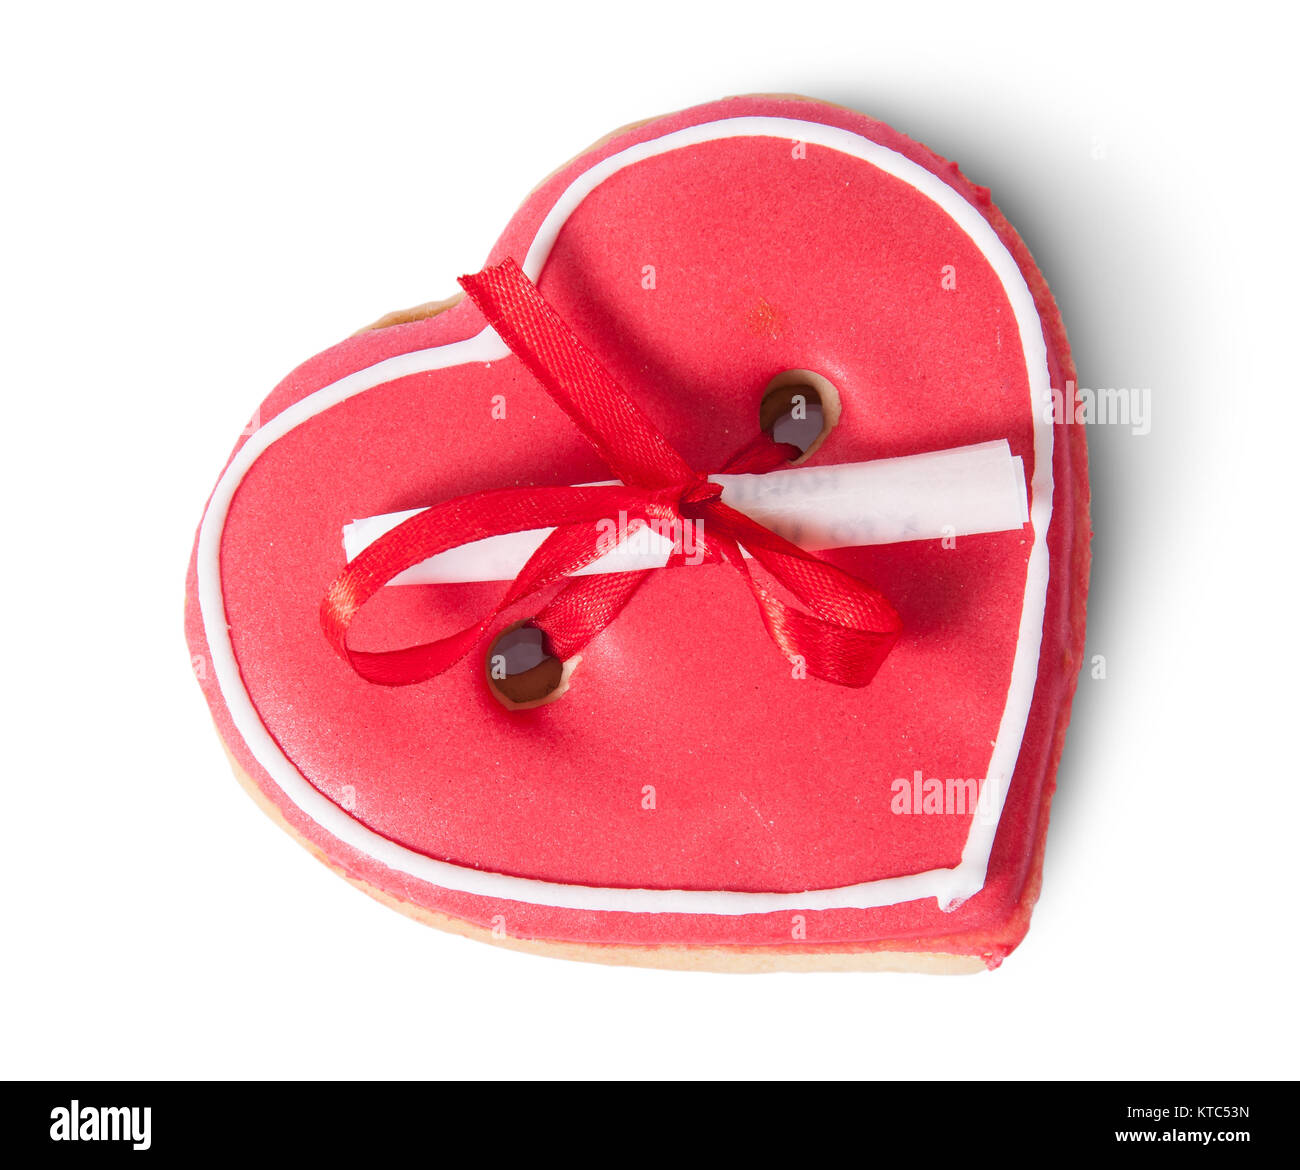 Cookies heart with note on top - Stock Image